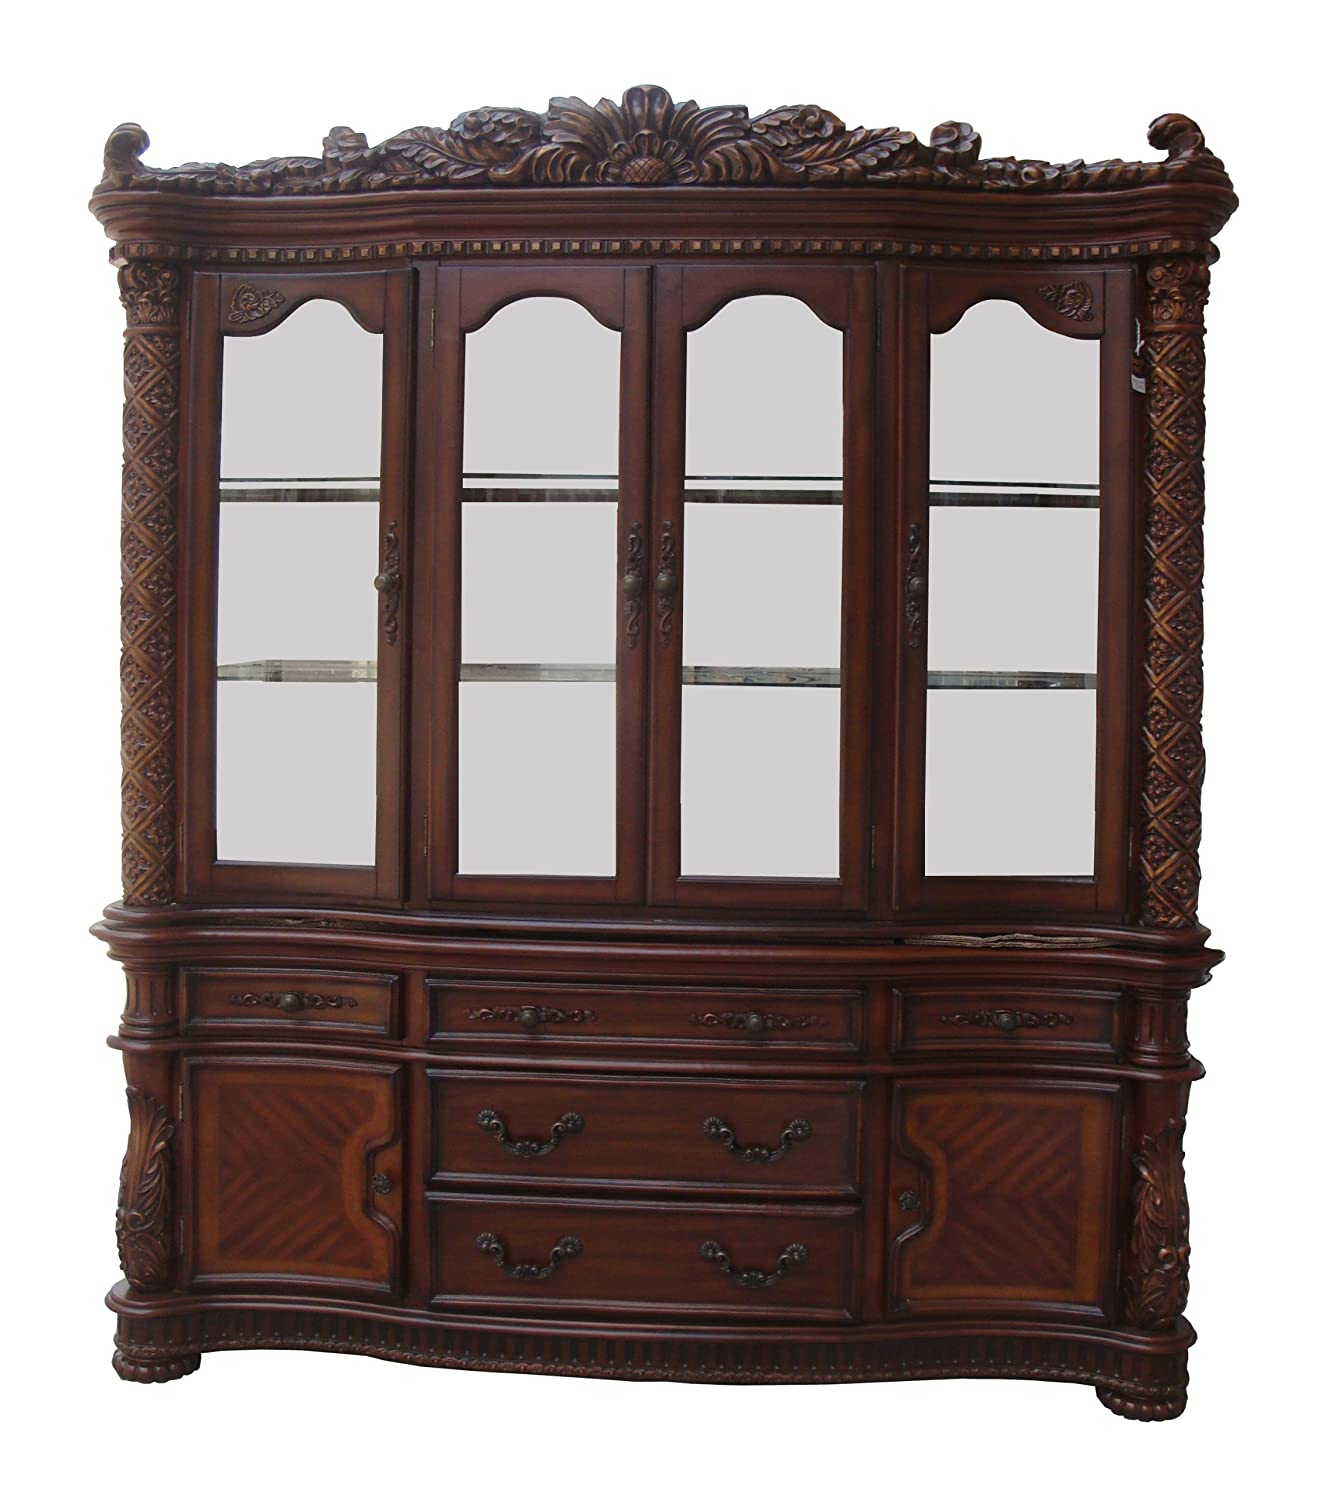 Amazon.com - ACME 60006 Vendome Hutch and Buffet China Cabinet ...